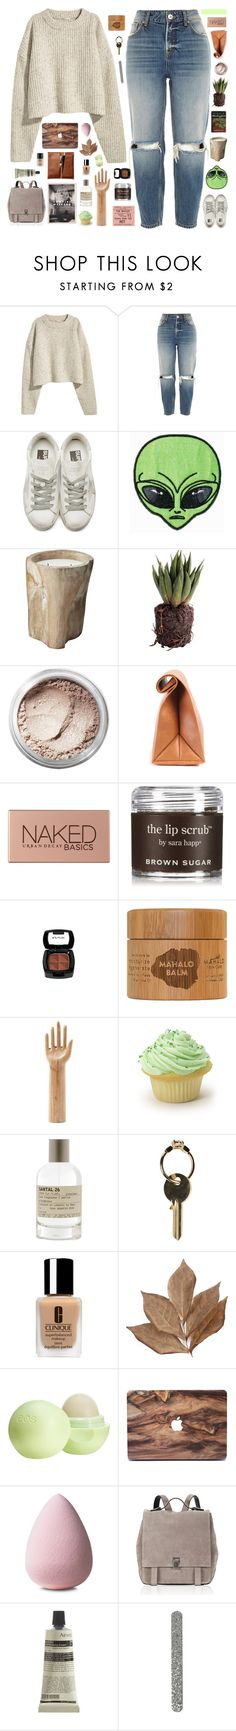 """""""☾ for you i'd write a symphony"""" by thundxrstorms ❤ liked on Polyvore featuring River Island, Golden Goose, Bare Escentuals, Urban Decay, Sara Happ, HAY, Le Labo, Maison Margiela, Clinique and Bliss Studio"""